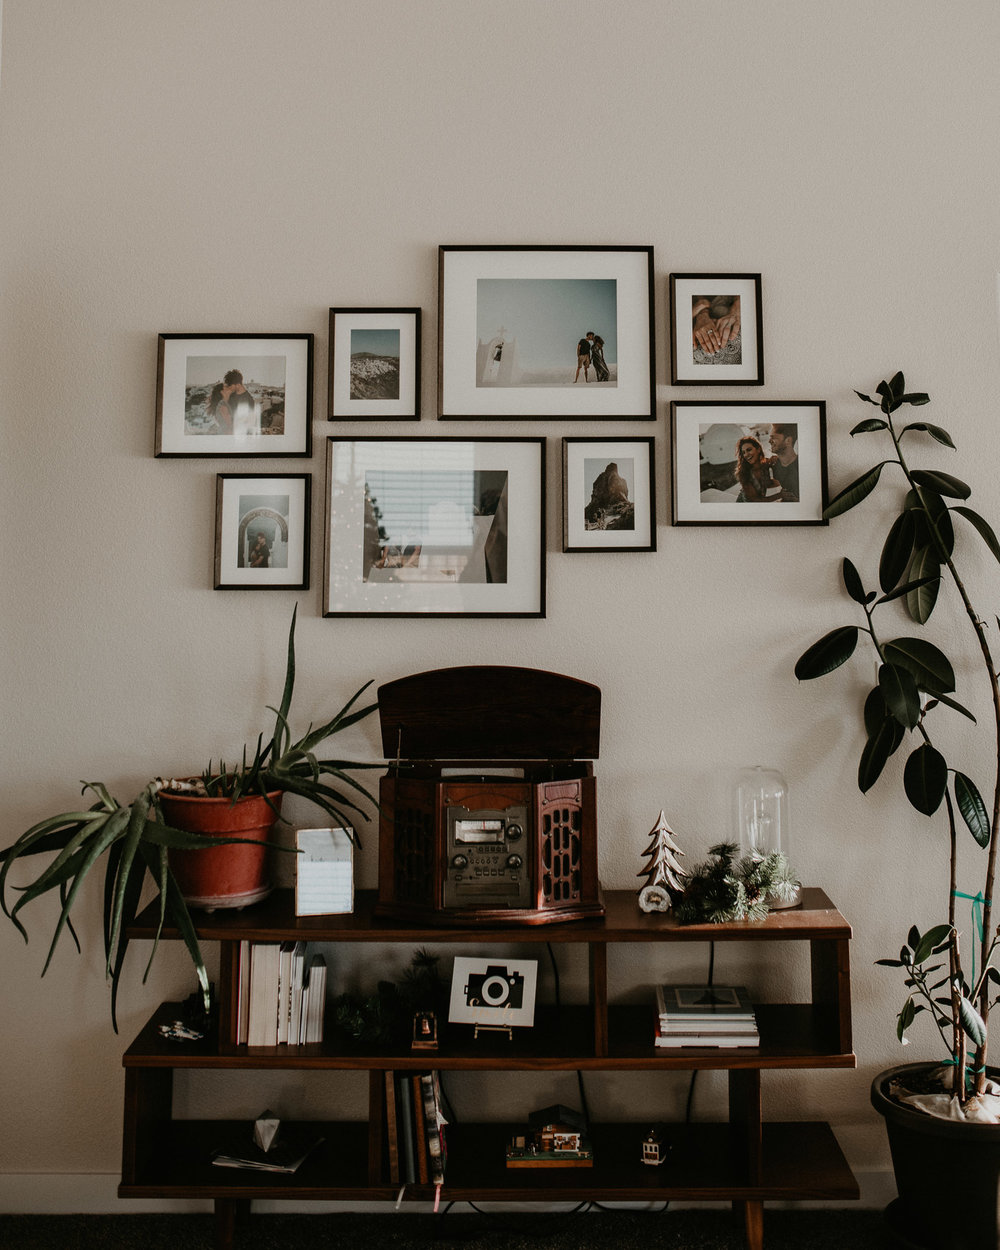 Boise Boudoir Photographer Boise Senior Photographer Makayla Madden Photography Mid Century Modern Ashlyn Bookshelf World Market Aloe Plant Record Player Vinyl Rubber Tree